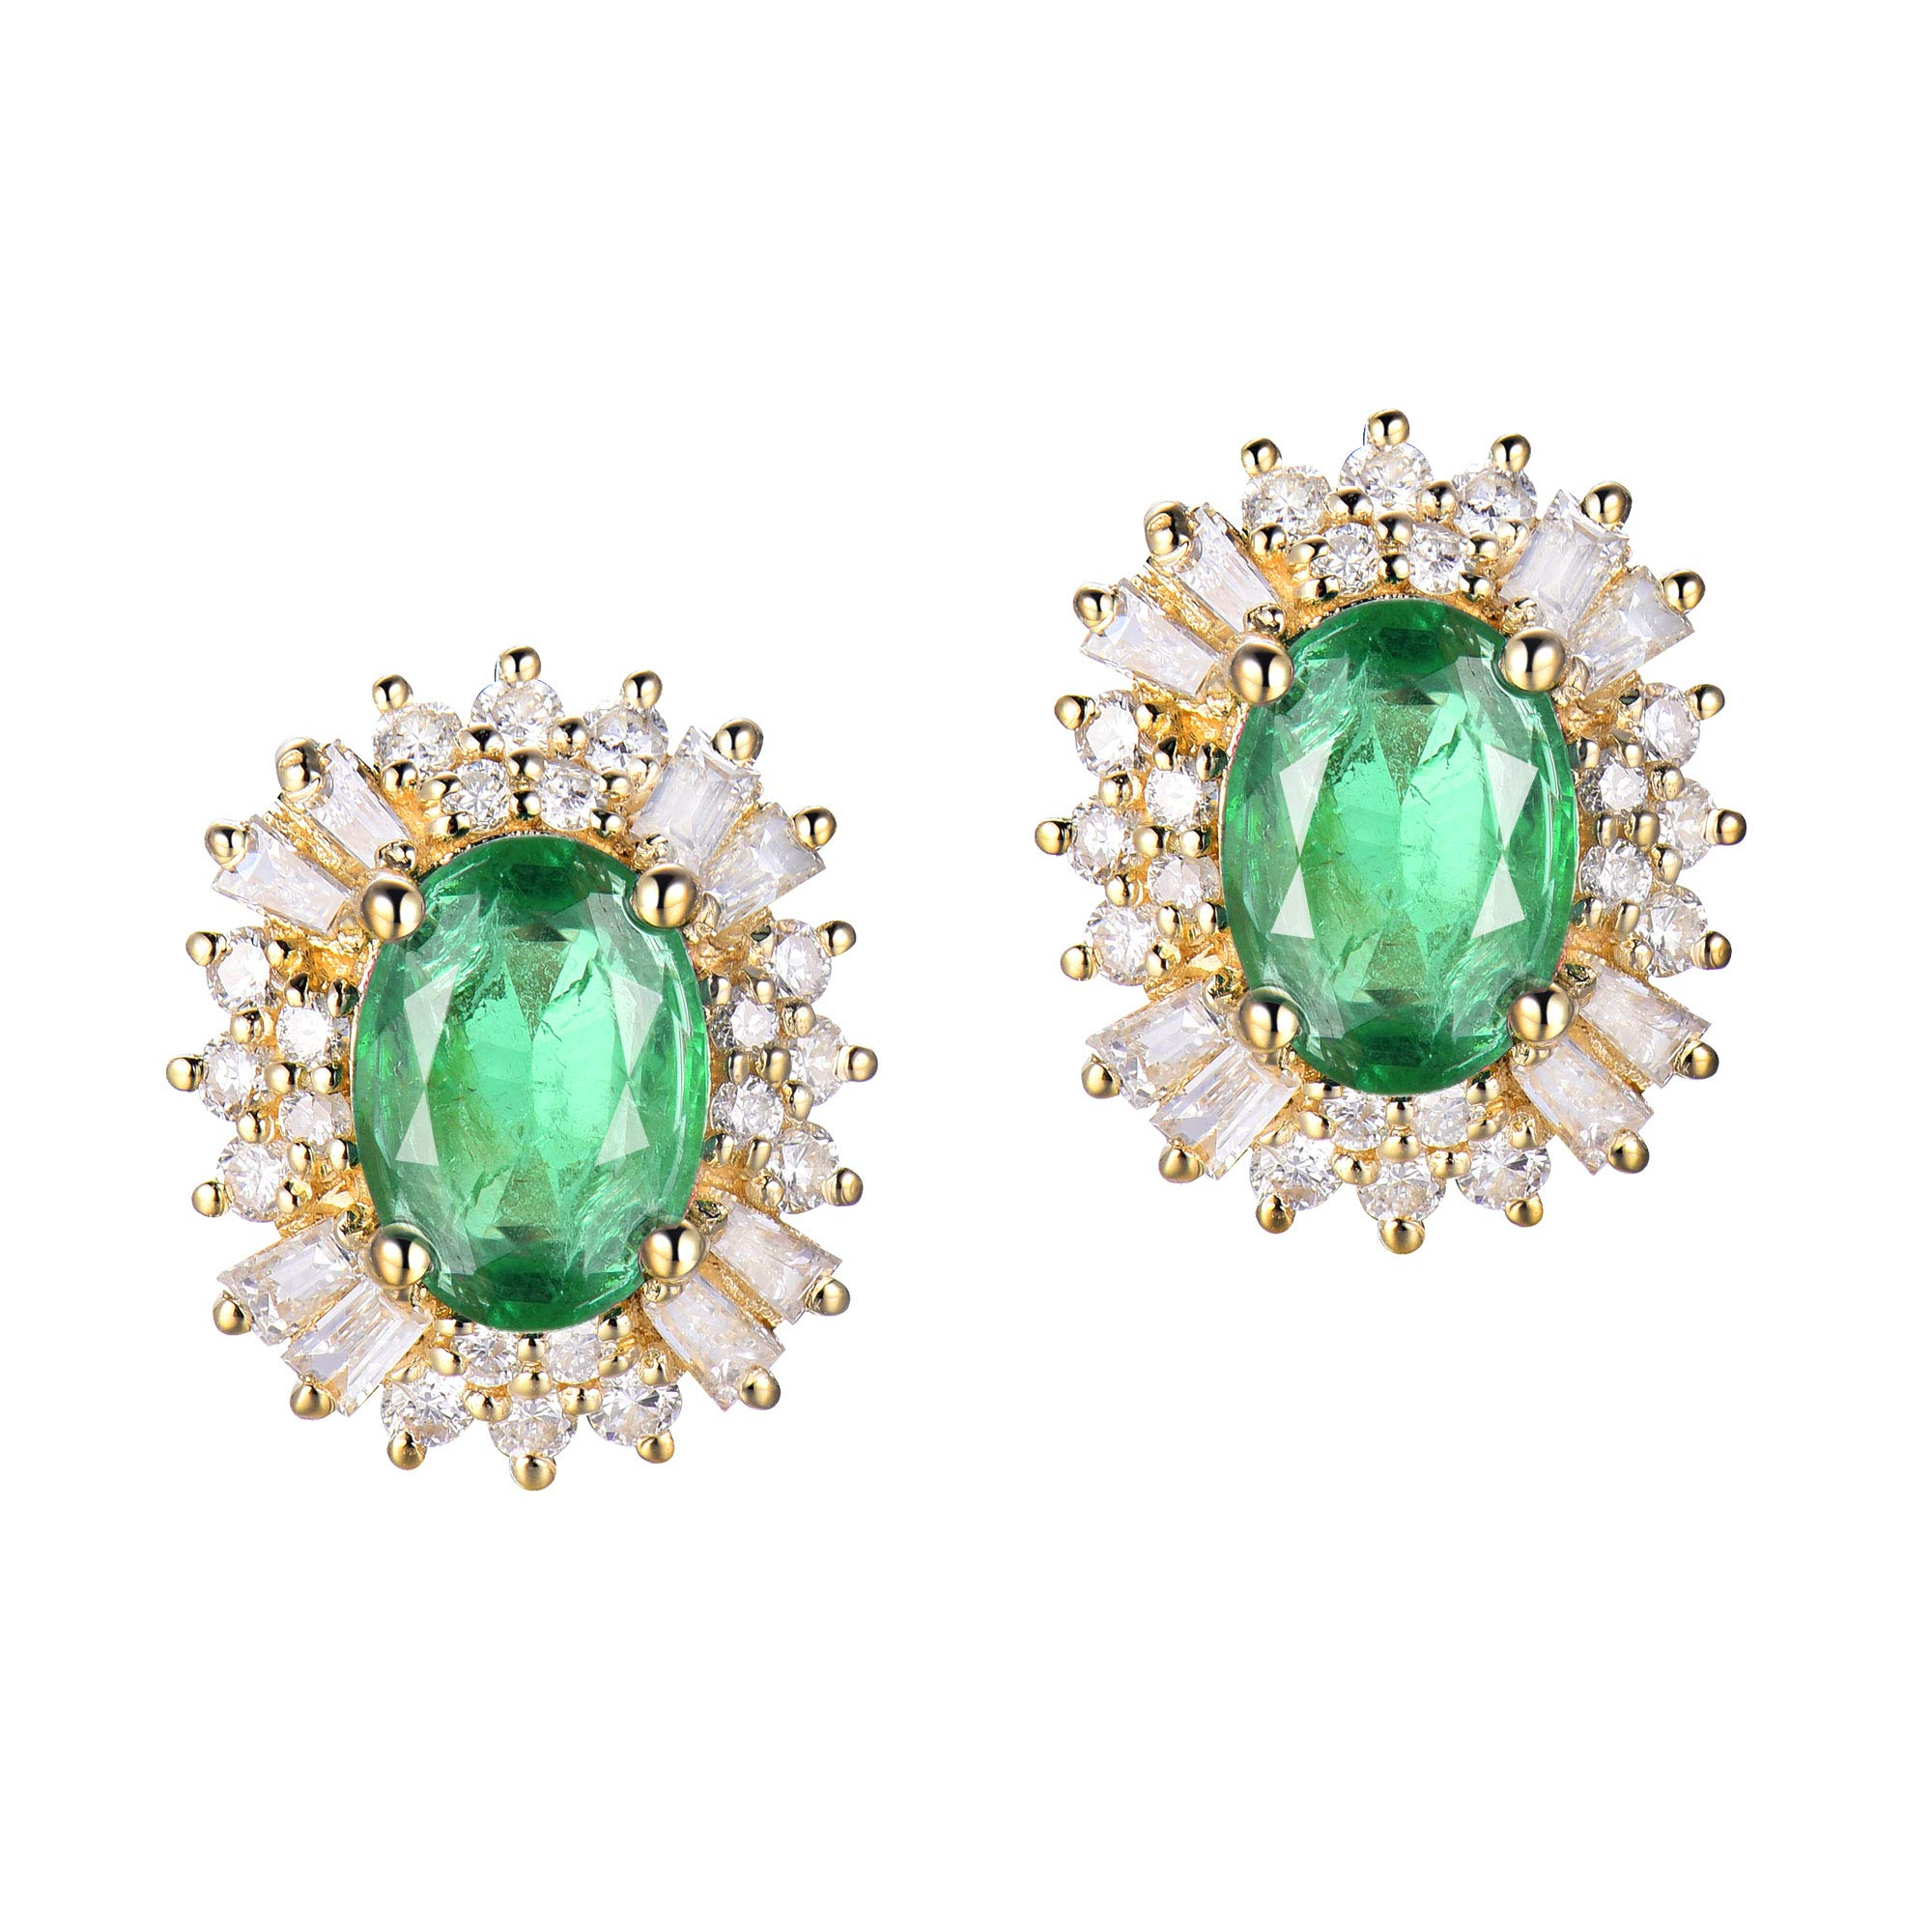 Lanmi 14K Rose Yellow Gold Natural Emerald Earrings Studs with Diamonds for Women